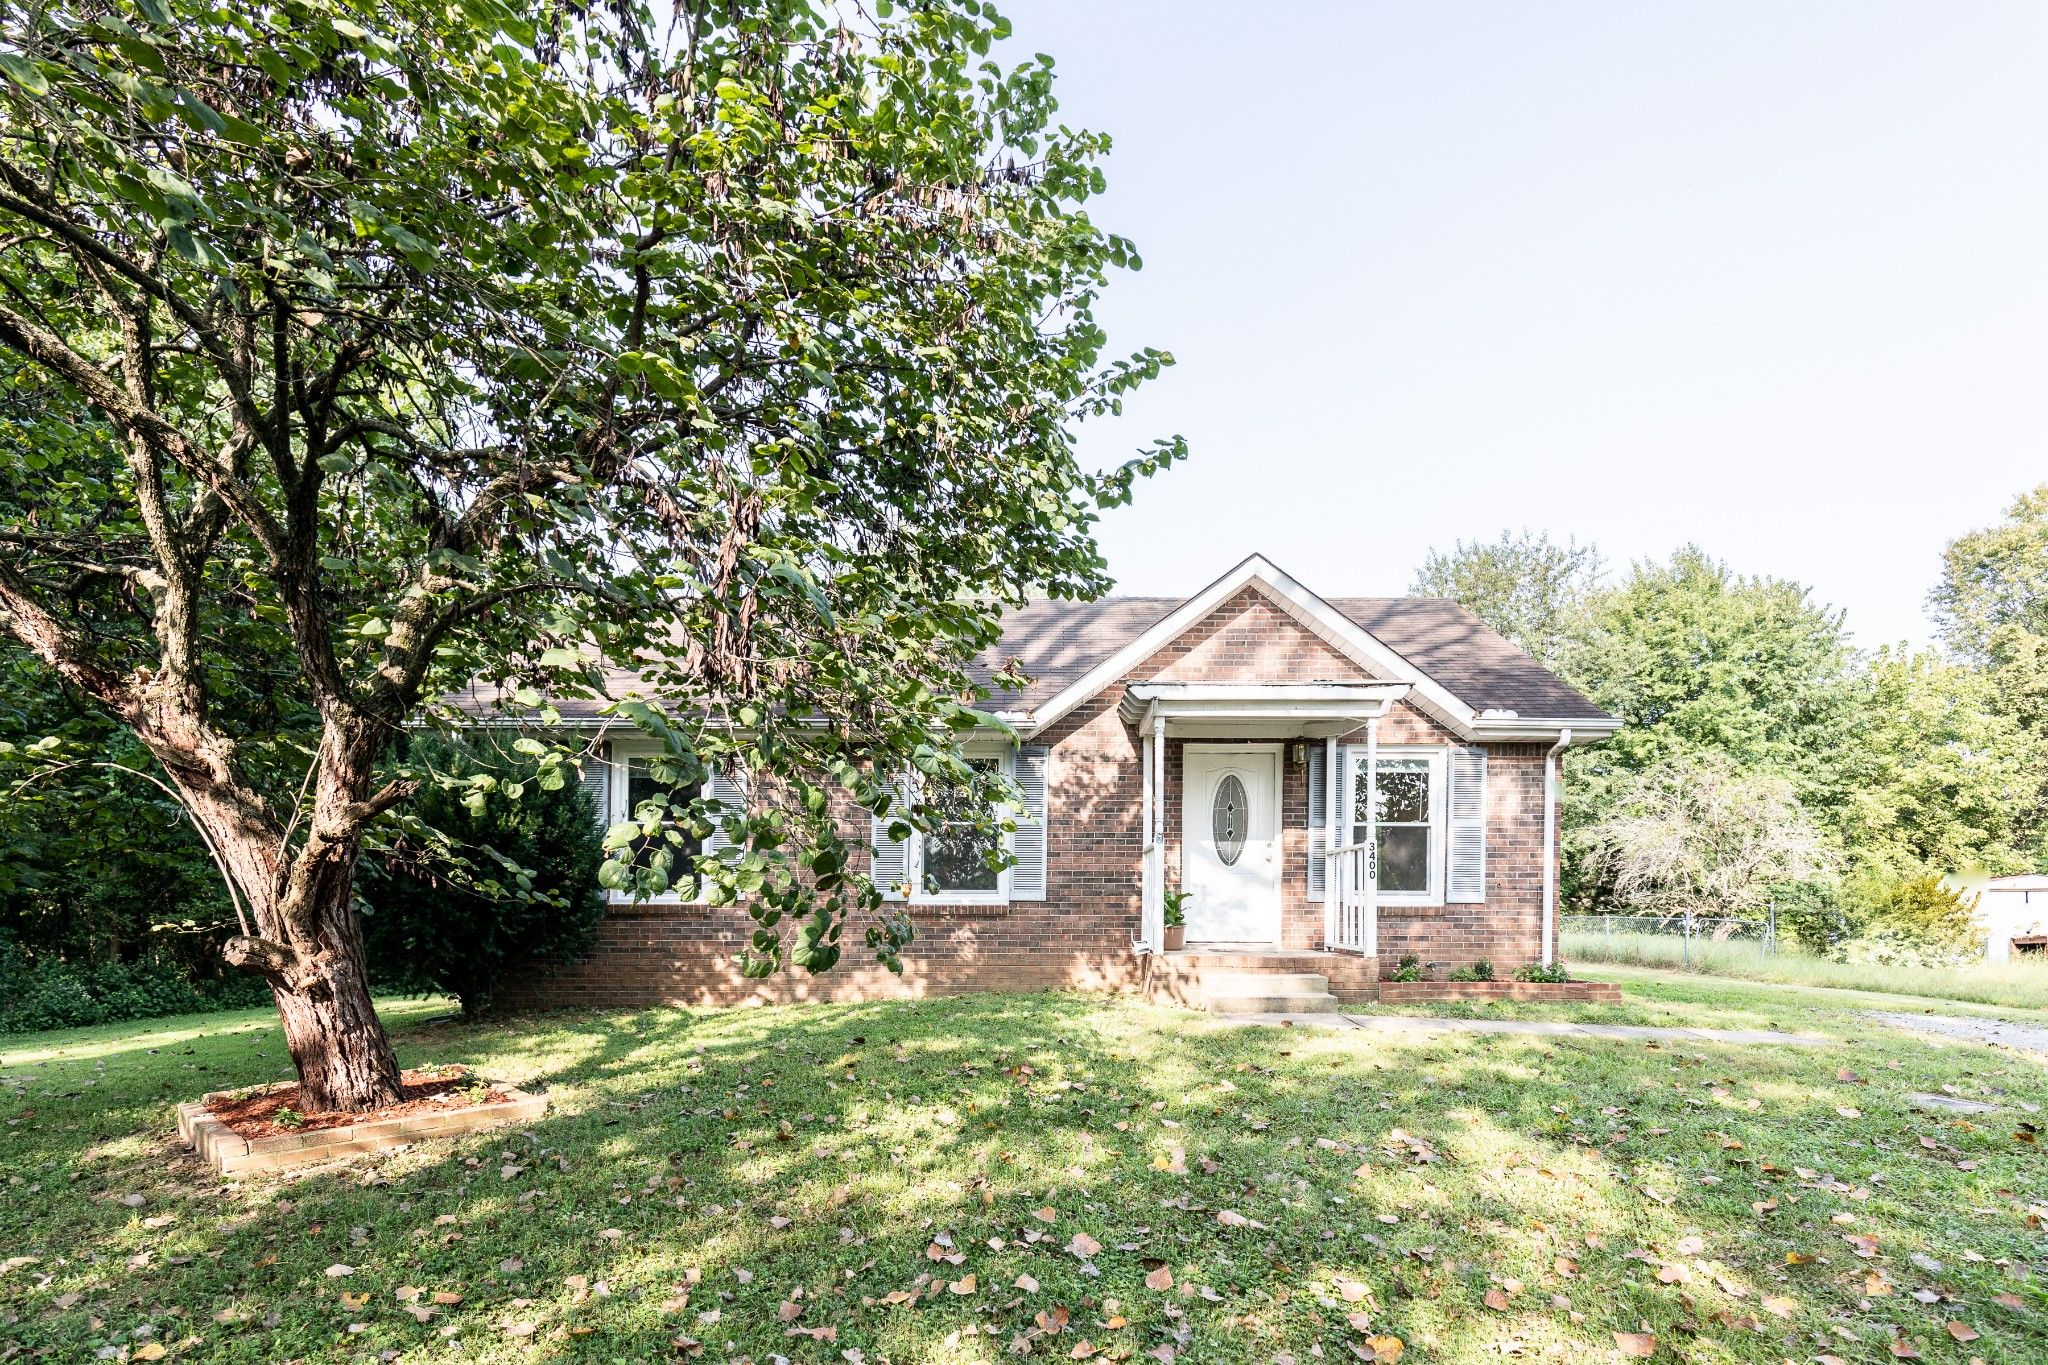 *Multiple Offer ALL offers due by 9/19 4:30 pm* Adorable All Brick Ranch w/ Spacious Great Room - Dining Kitchen Combo - Bay Window w/ Storage Nook - Freshly Painted, New HVAC, Laminate Floors, New Windows - Great Location, Quick Access to I-24 & close to Ft. Campbell